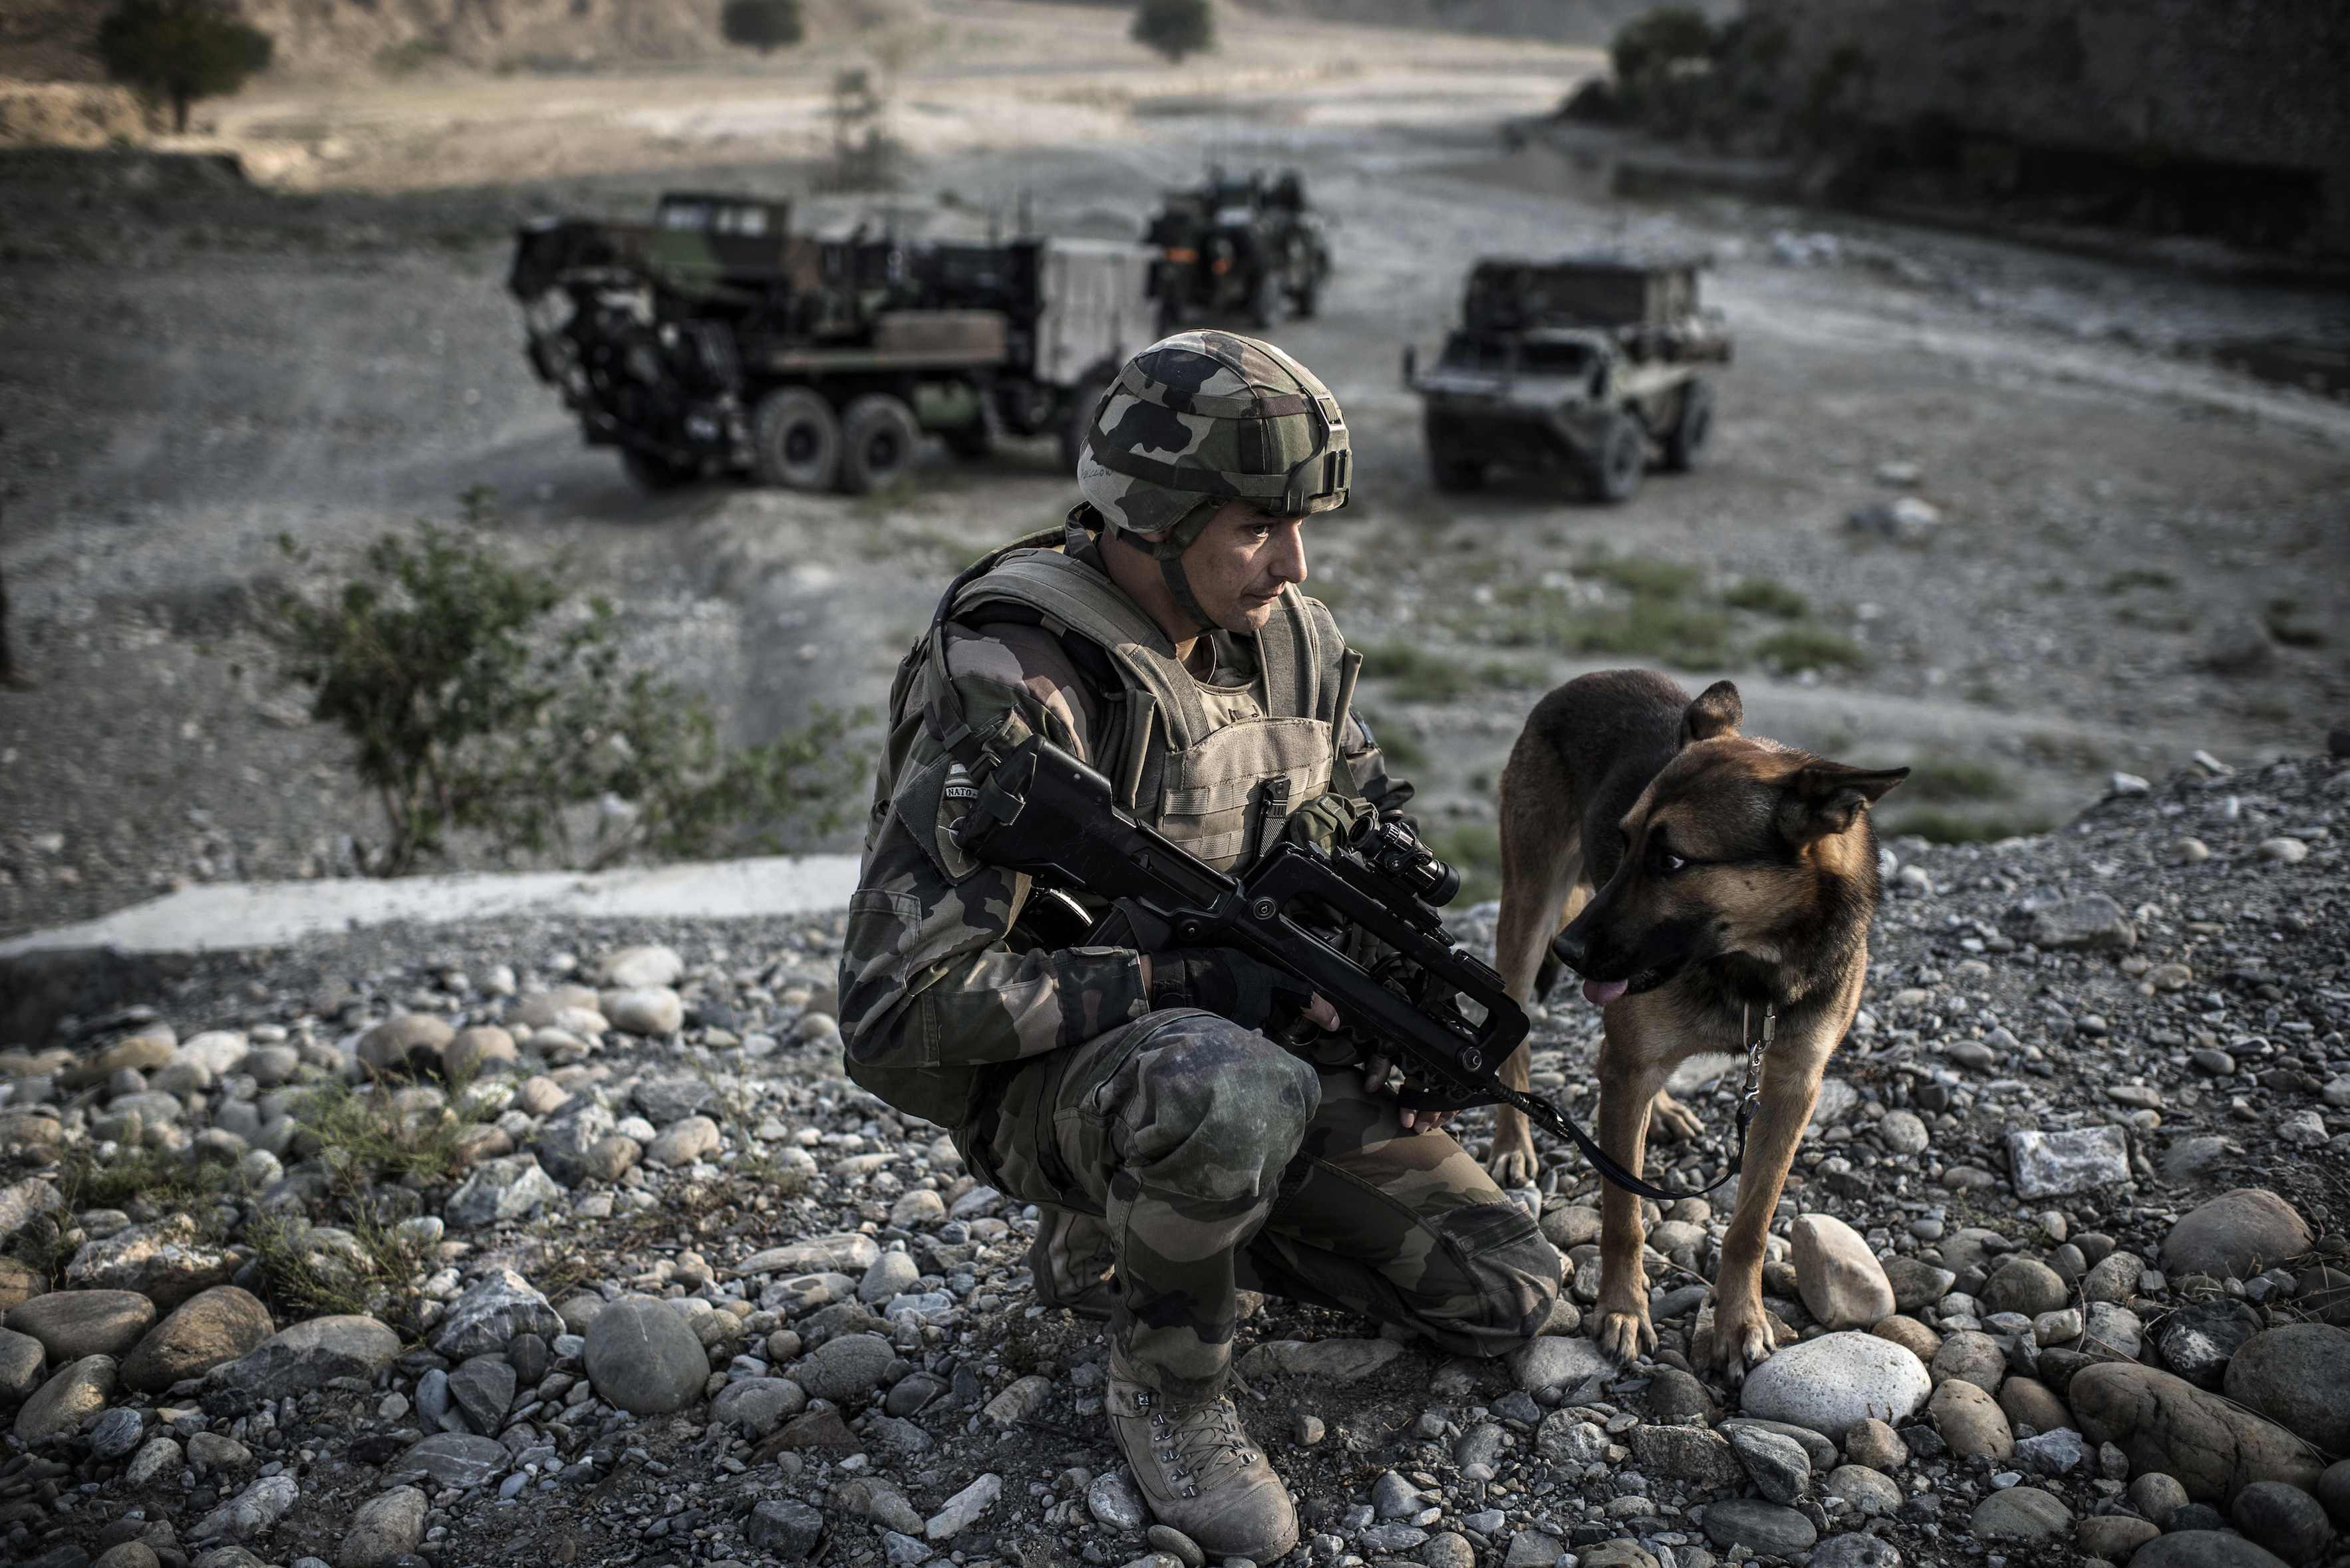 A French soldier crouches beside a dog before the passing of a convoy